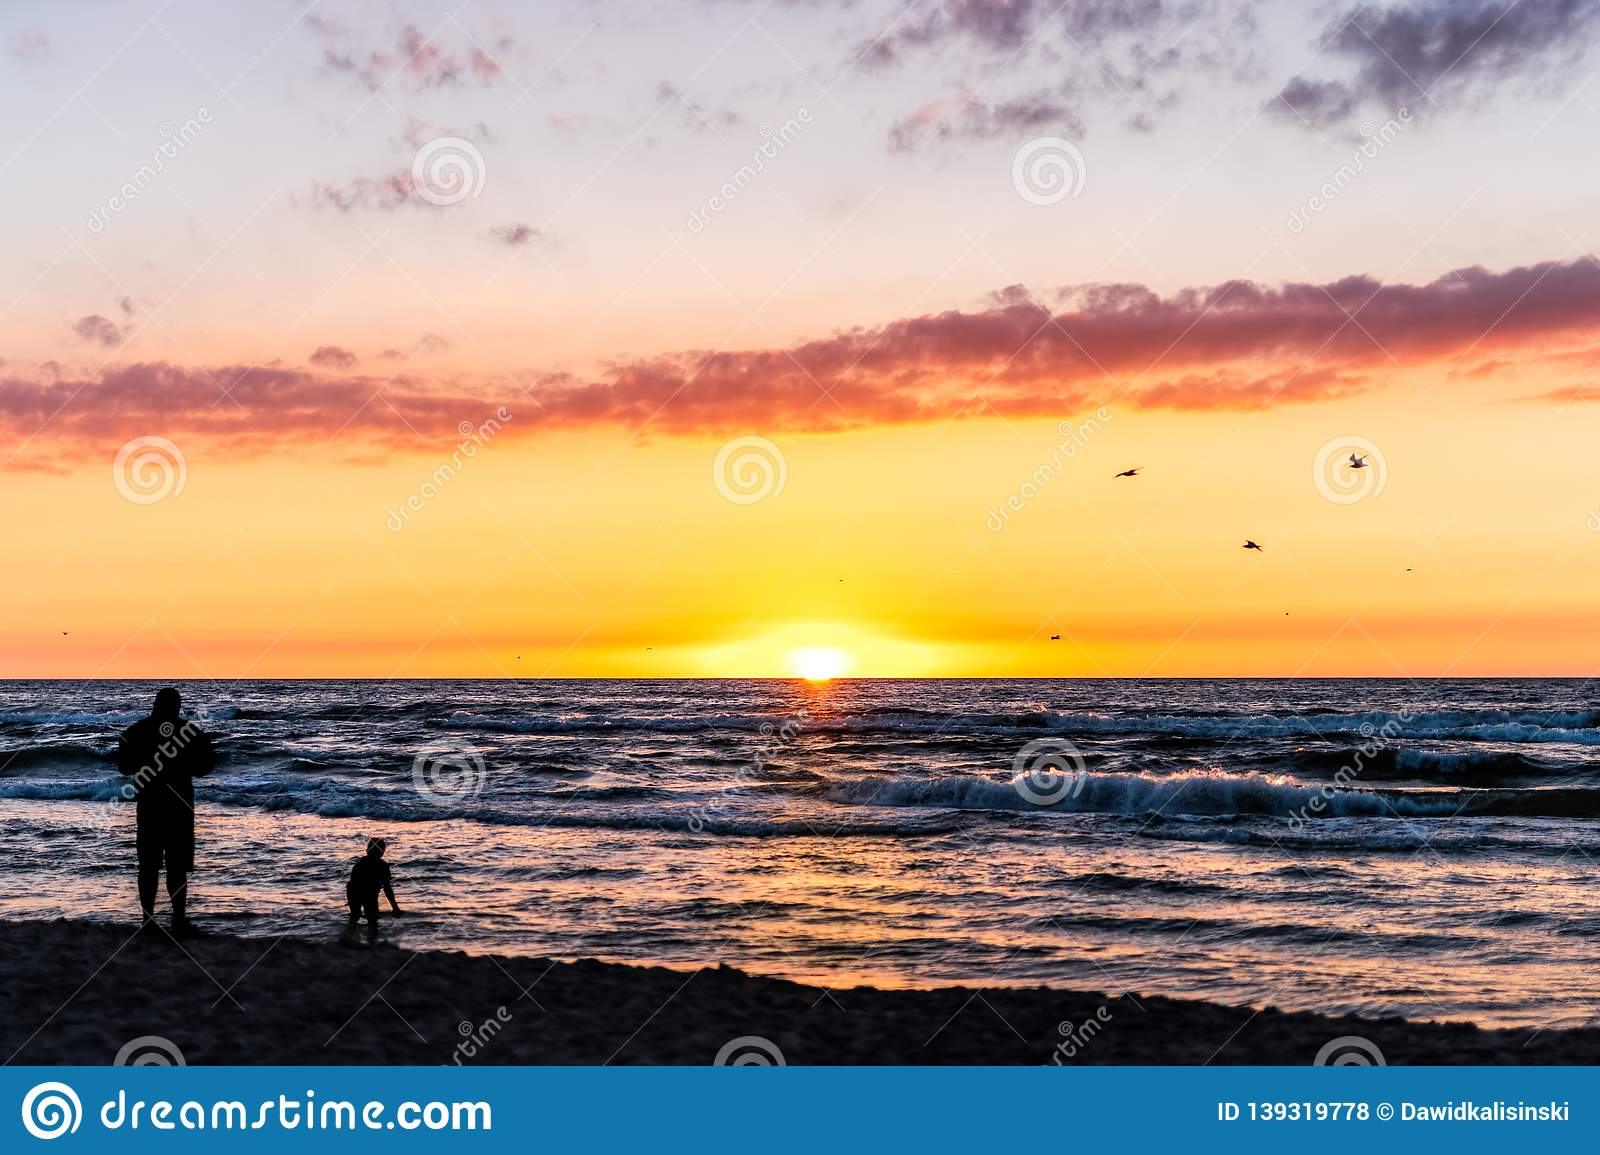 Silhouette of a man and child playing at the beach with beautiful sunset over sea